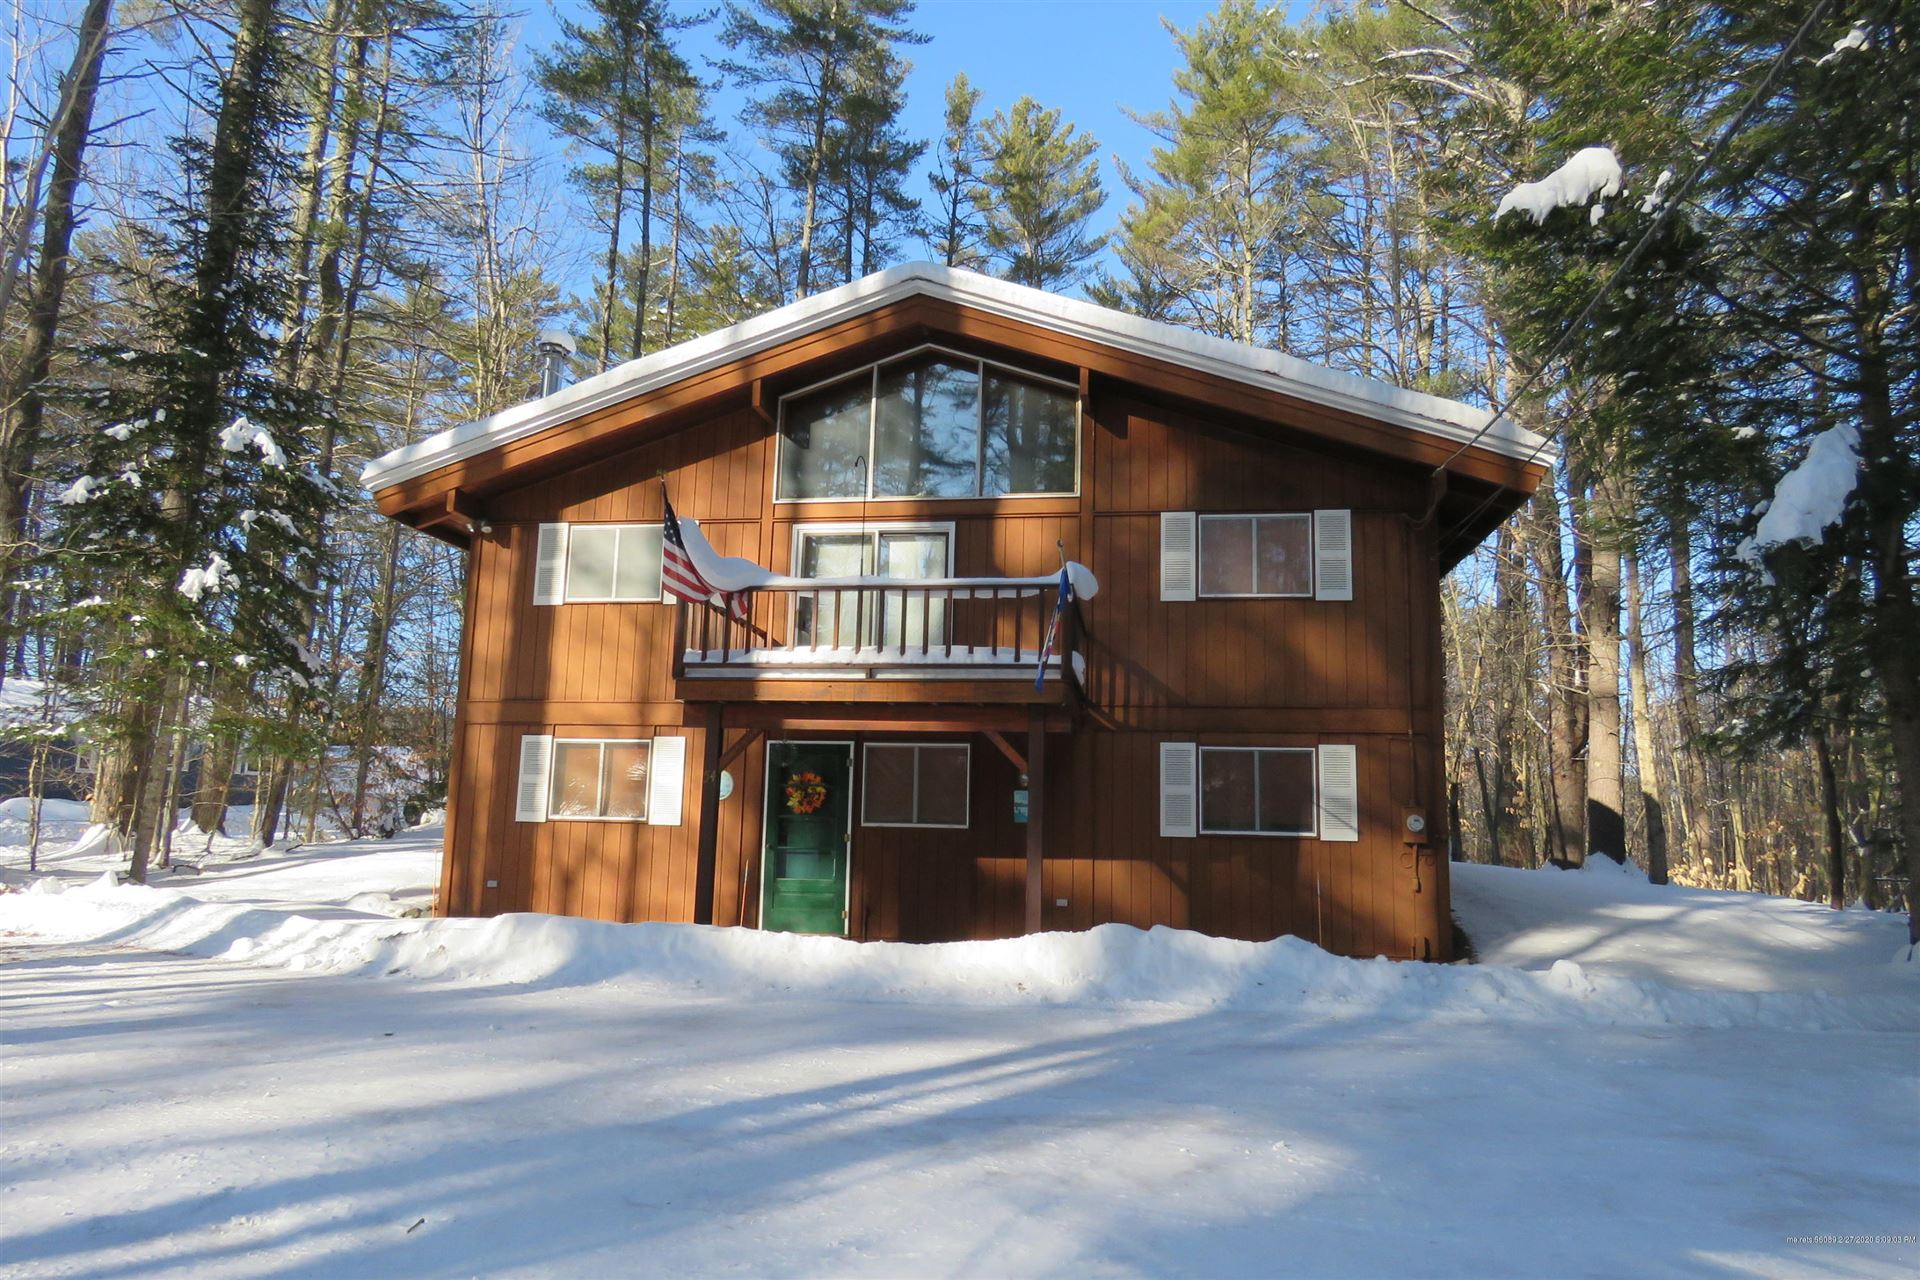 Photo of 54 Alpine Road, Bridgton, ME 04009 (MLS # 1443182)